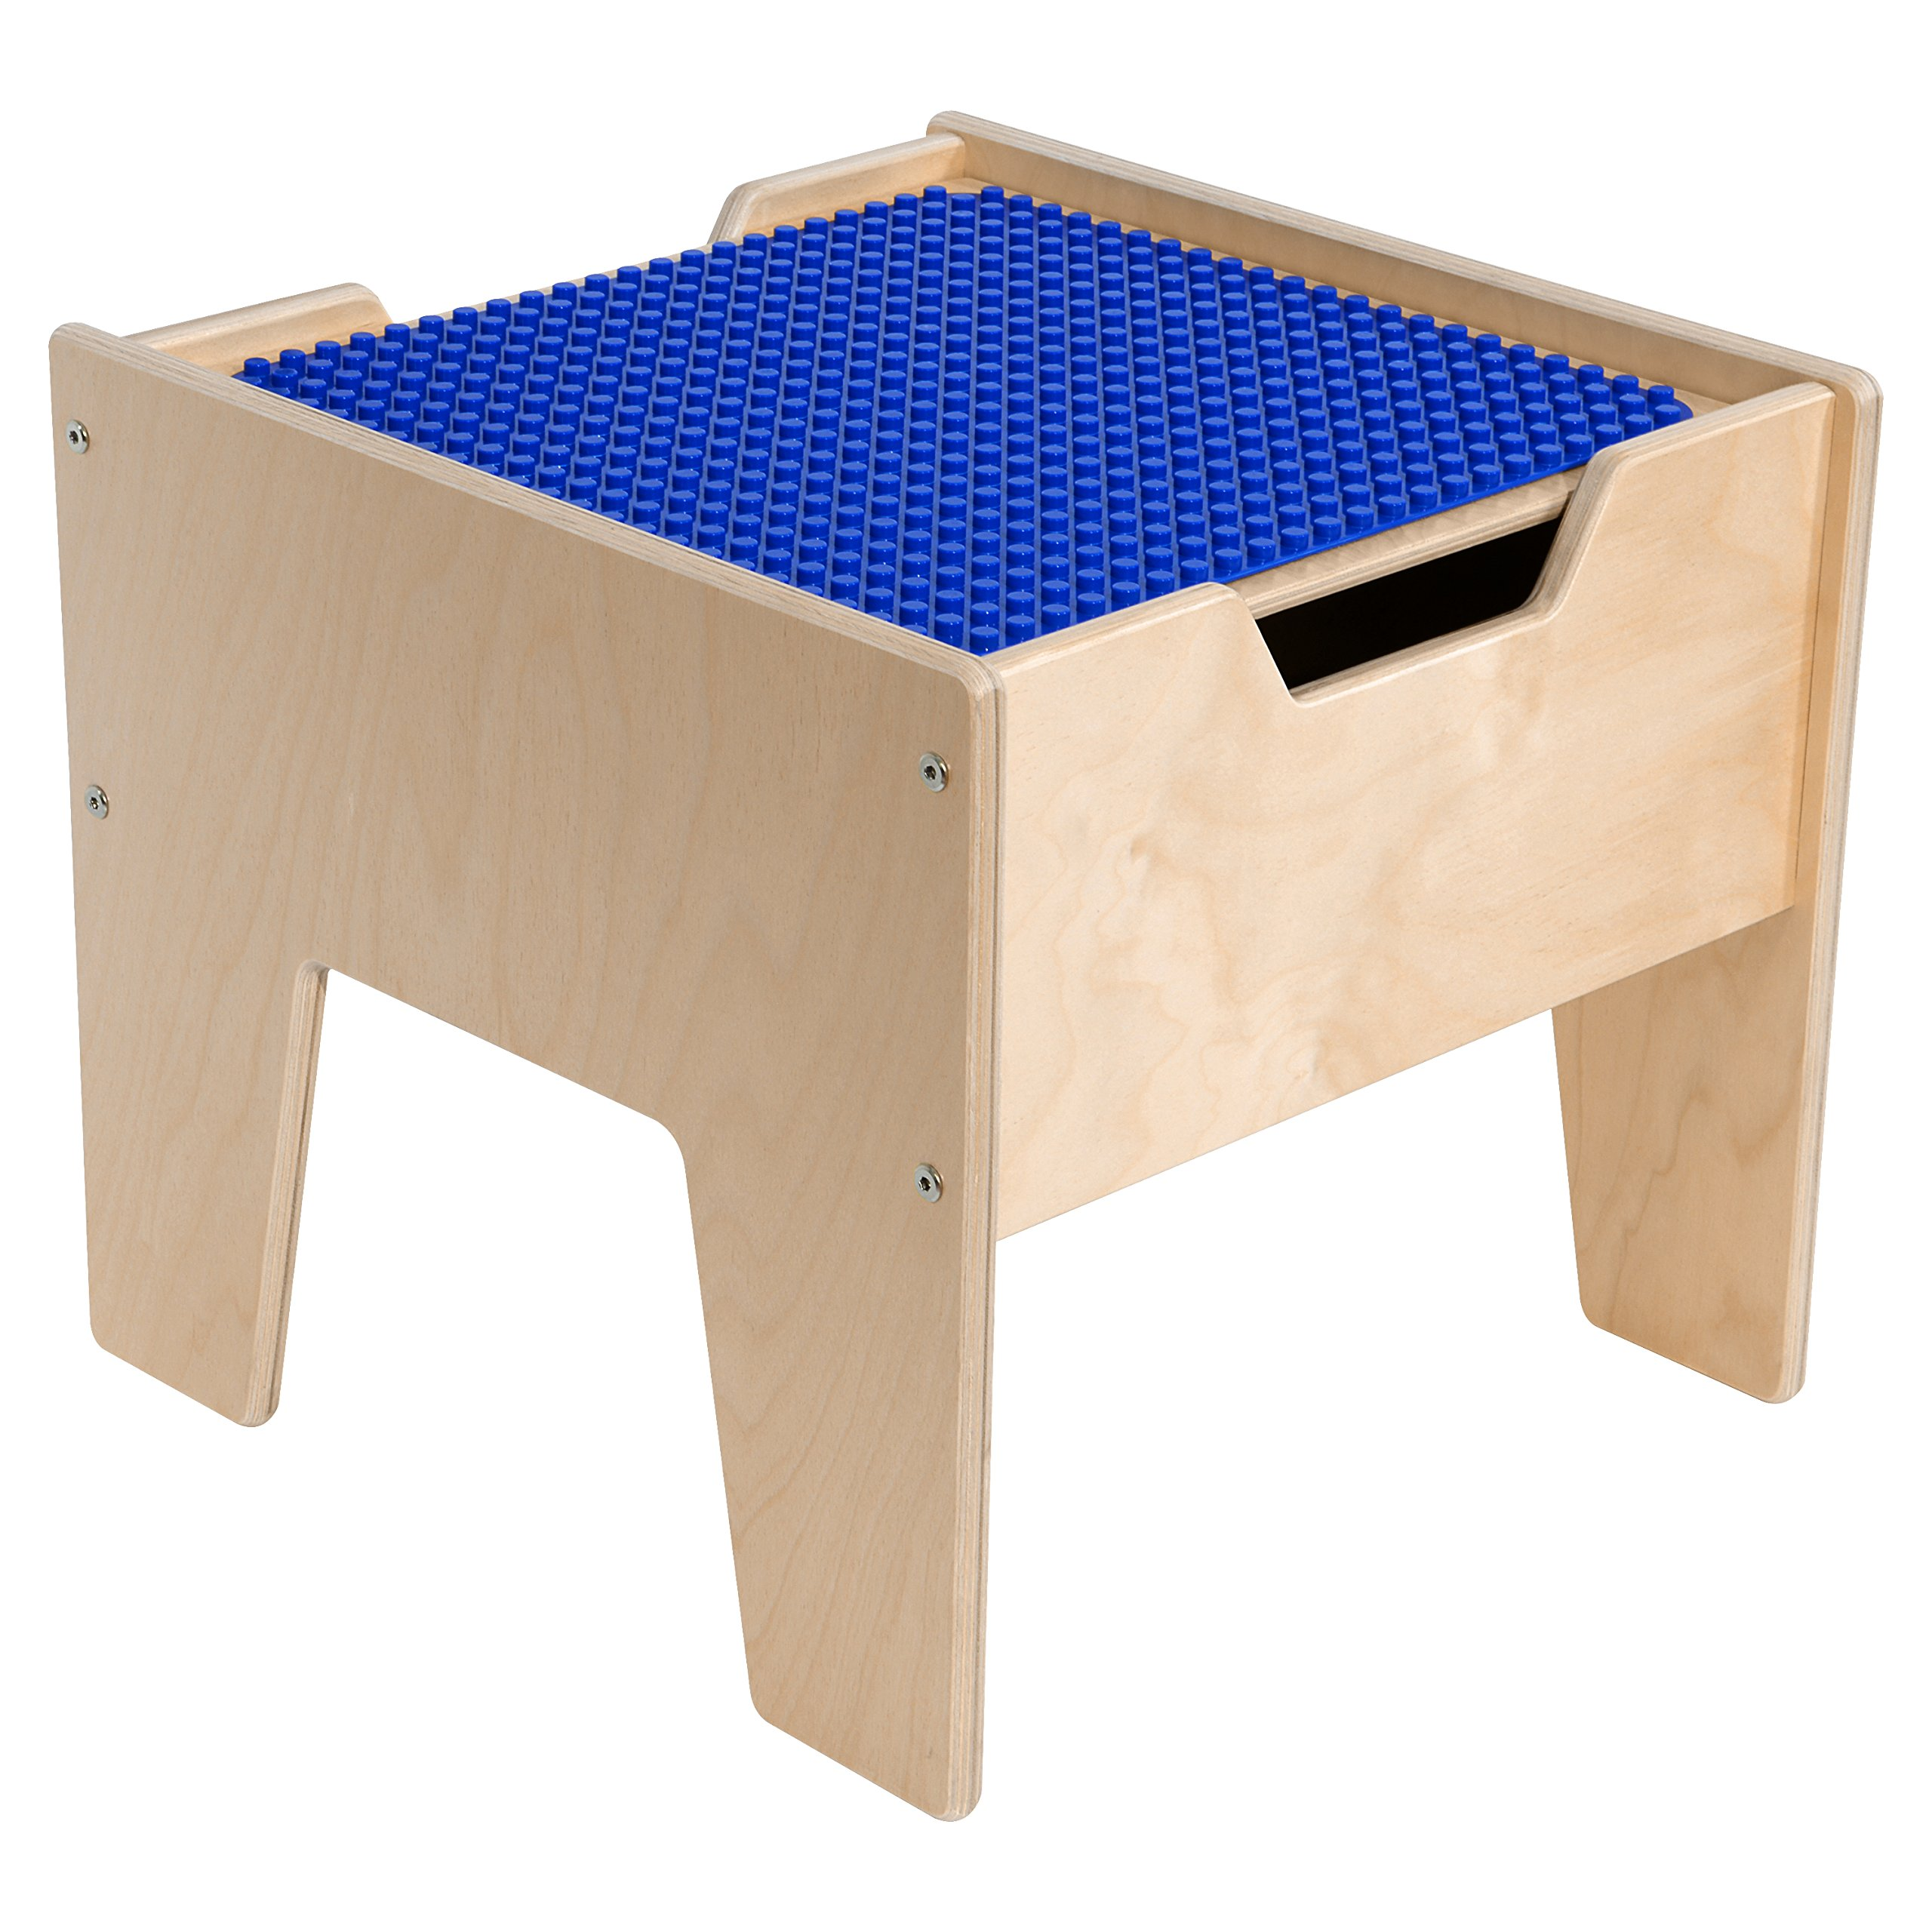 Contender C991300-PB 2-N-1 Activity Table with DUPLO Compatible Top, RTA, Wood, Blue/Natural